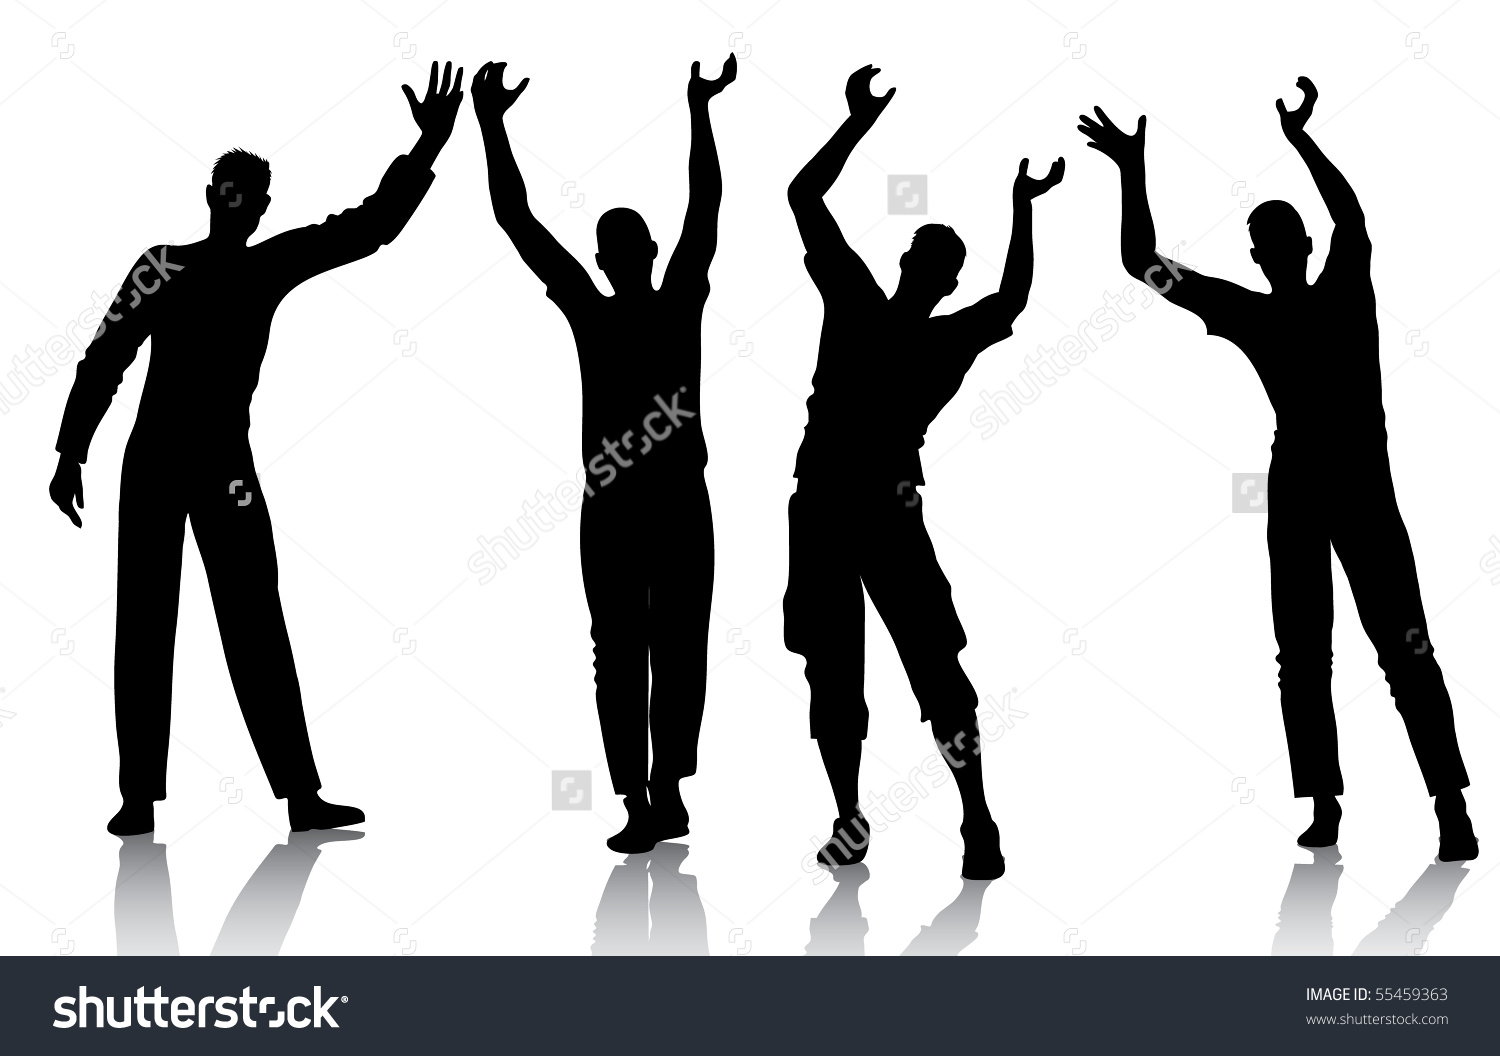 1500x1056 Free Clipart Images Silhouette Helping Someone Up